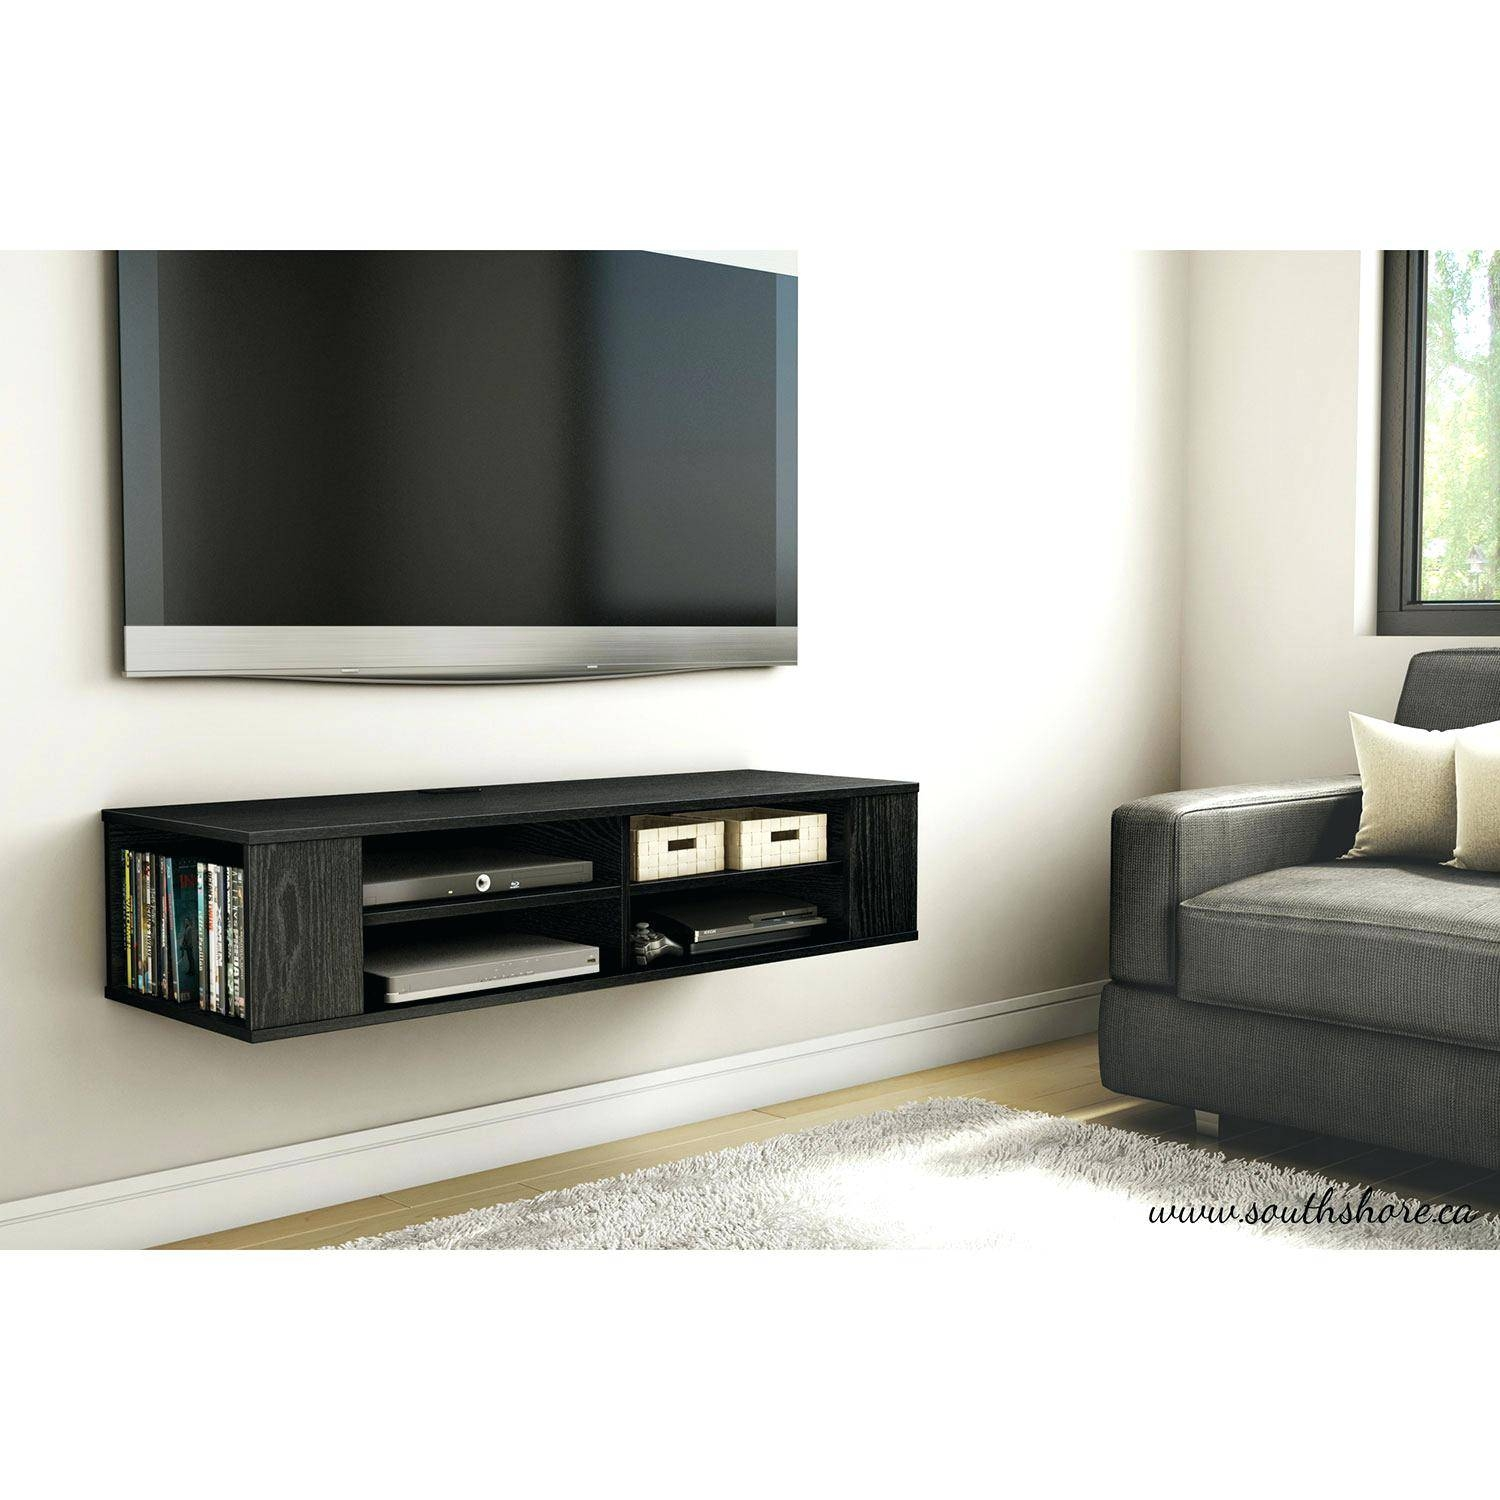 Tv Stand : Gorgeous Tv Stand W Allure Pieces Magnifier Tv Stand W With Nexera Tv Stands (View 11 of 15)